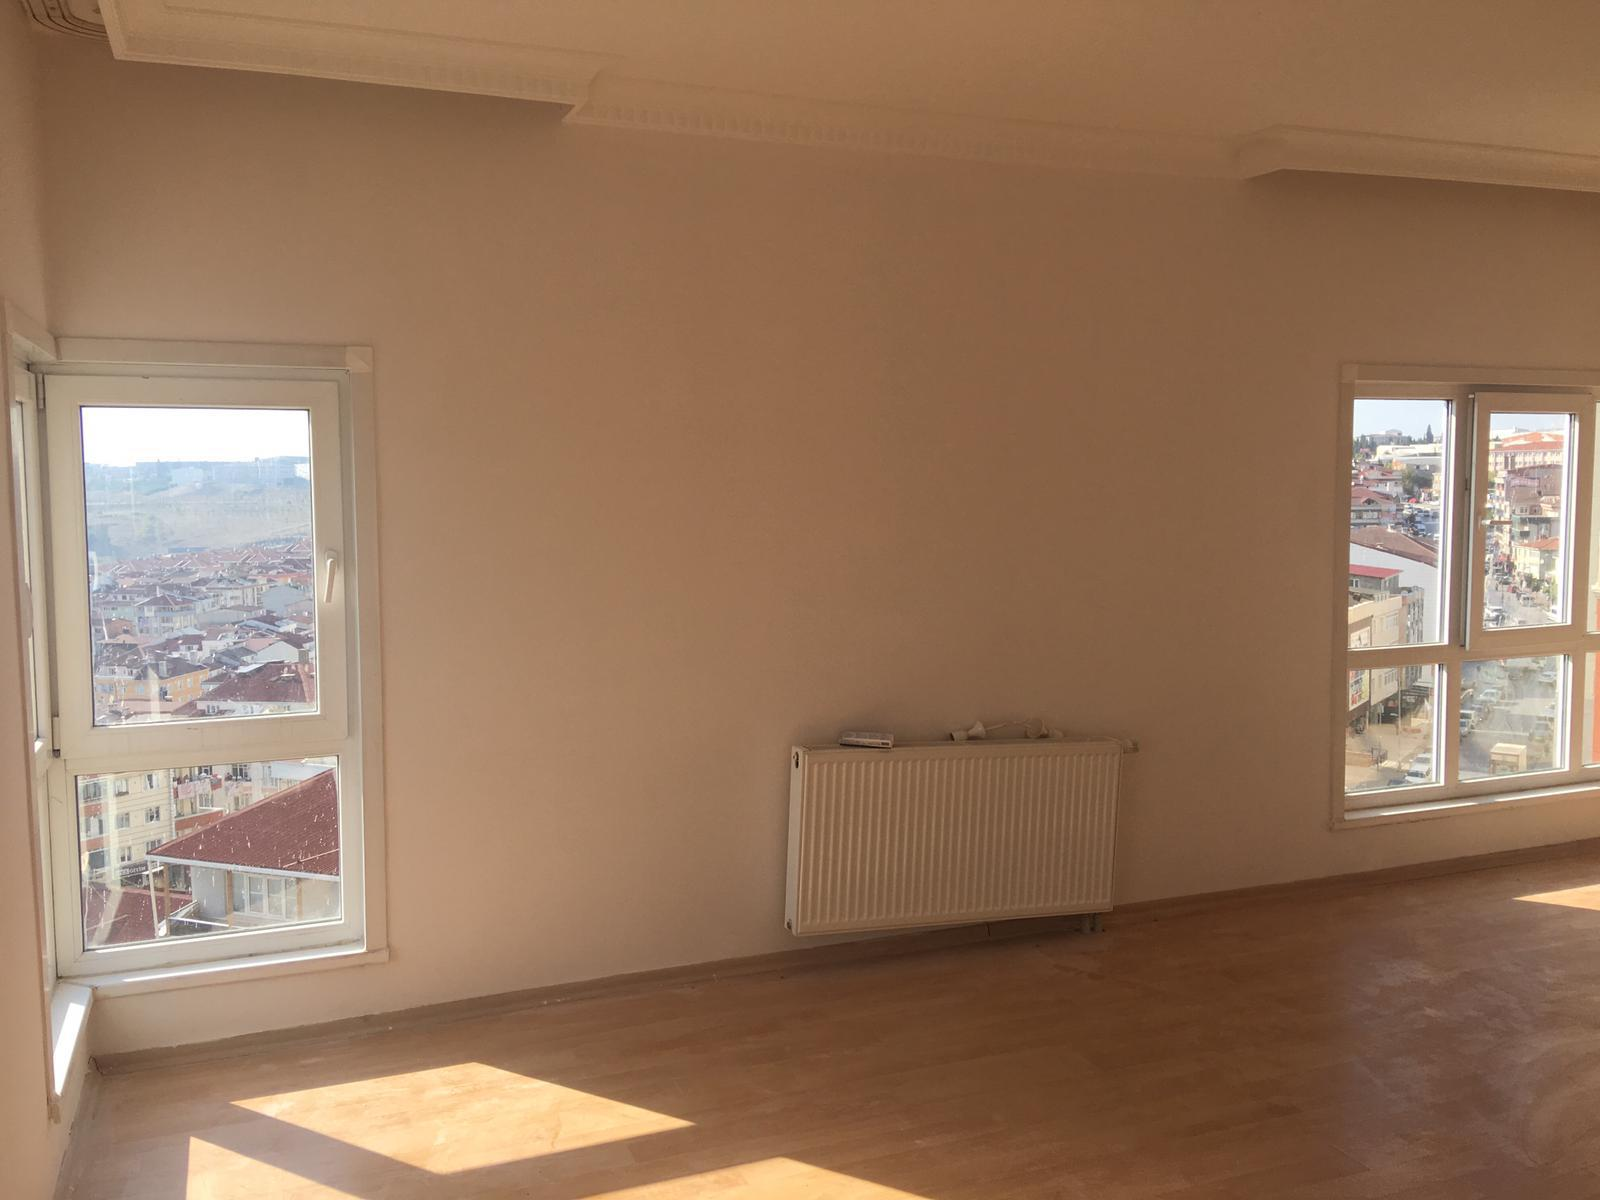 apartments in Istanbul for sale 20